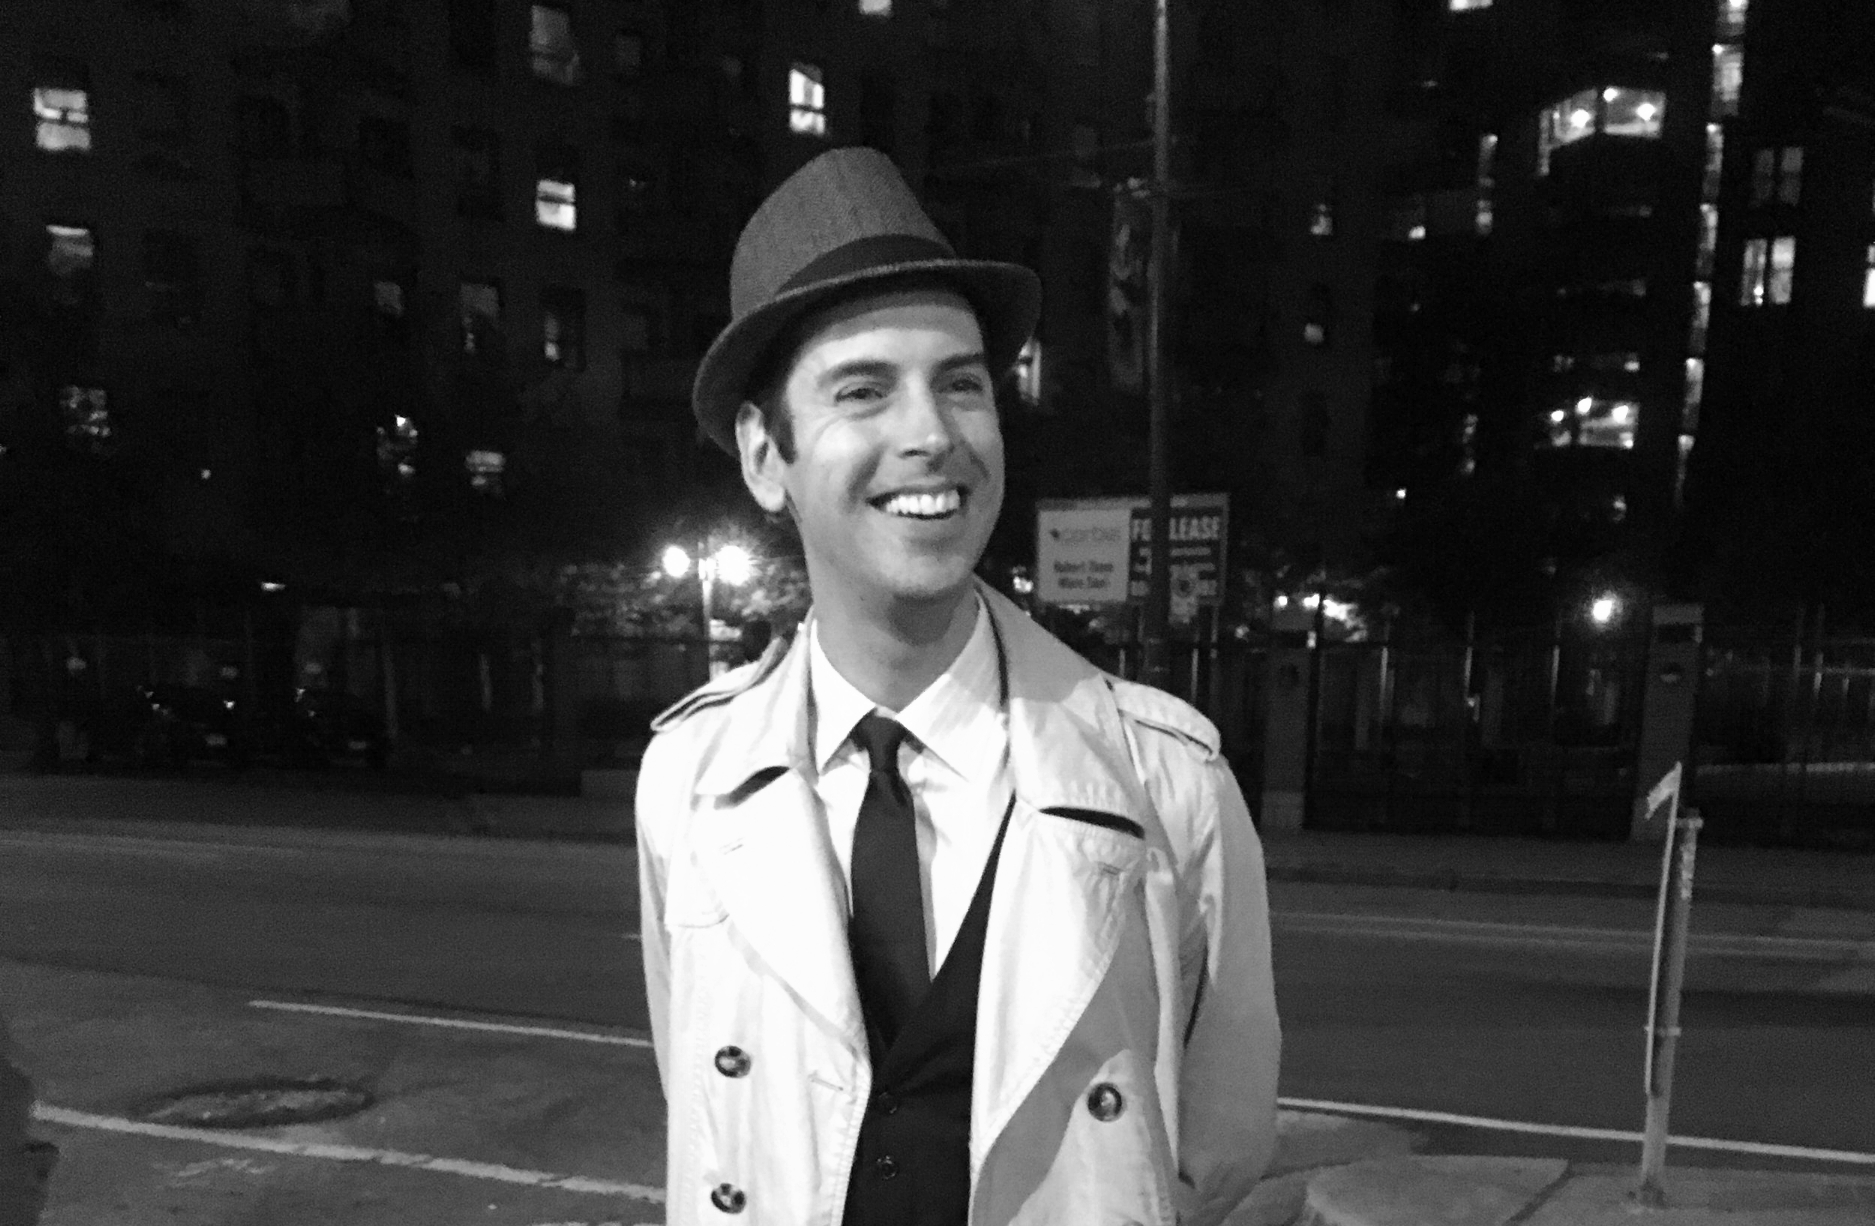 Will Woods, of Forbidden Vancouver's walking tours, guiding our group through downtown Vancouver and a gloomy era of Vancouver's past: Prohibition.